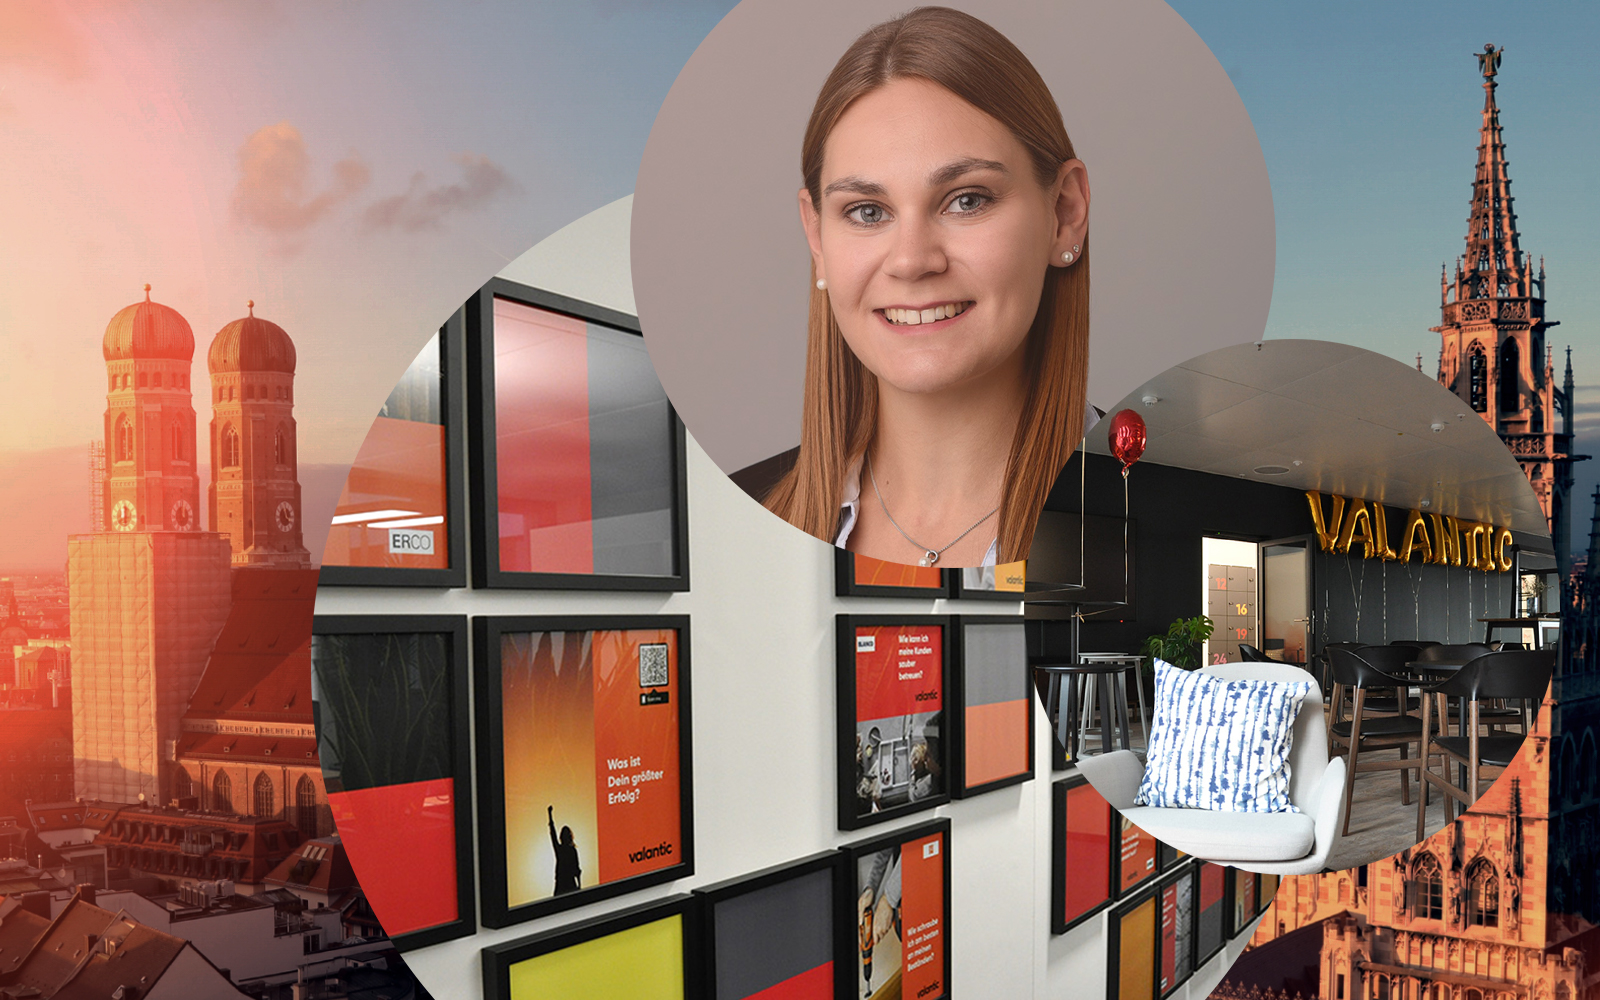 Image of Antonia Demleitner, Junior Consultant SAP TM at valantic Supply Chain Excellence in Munich